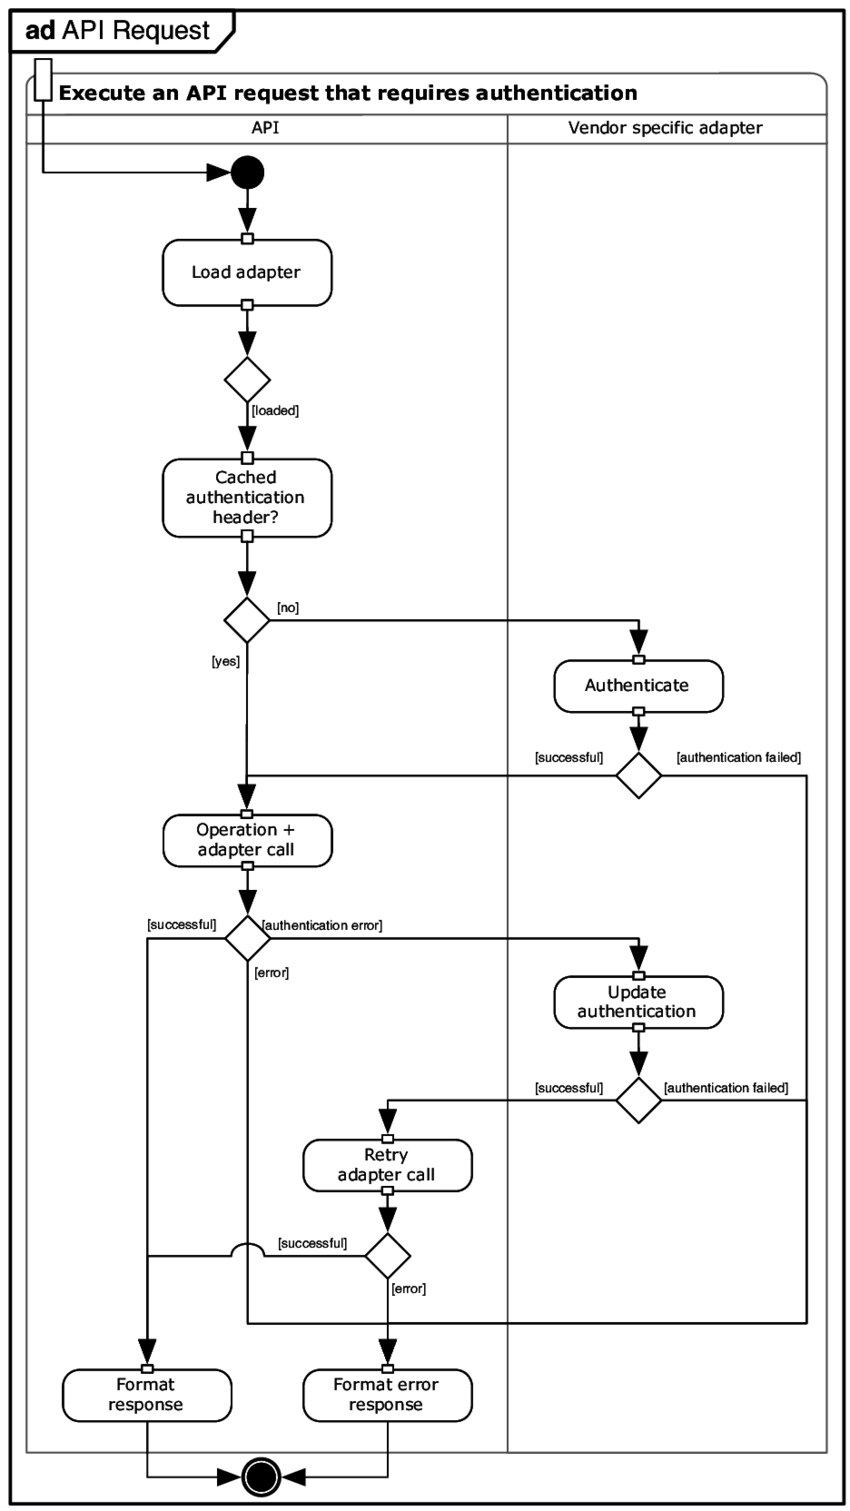 medium resolution of activity diagram showing the steps of authenticated api requests